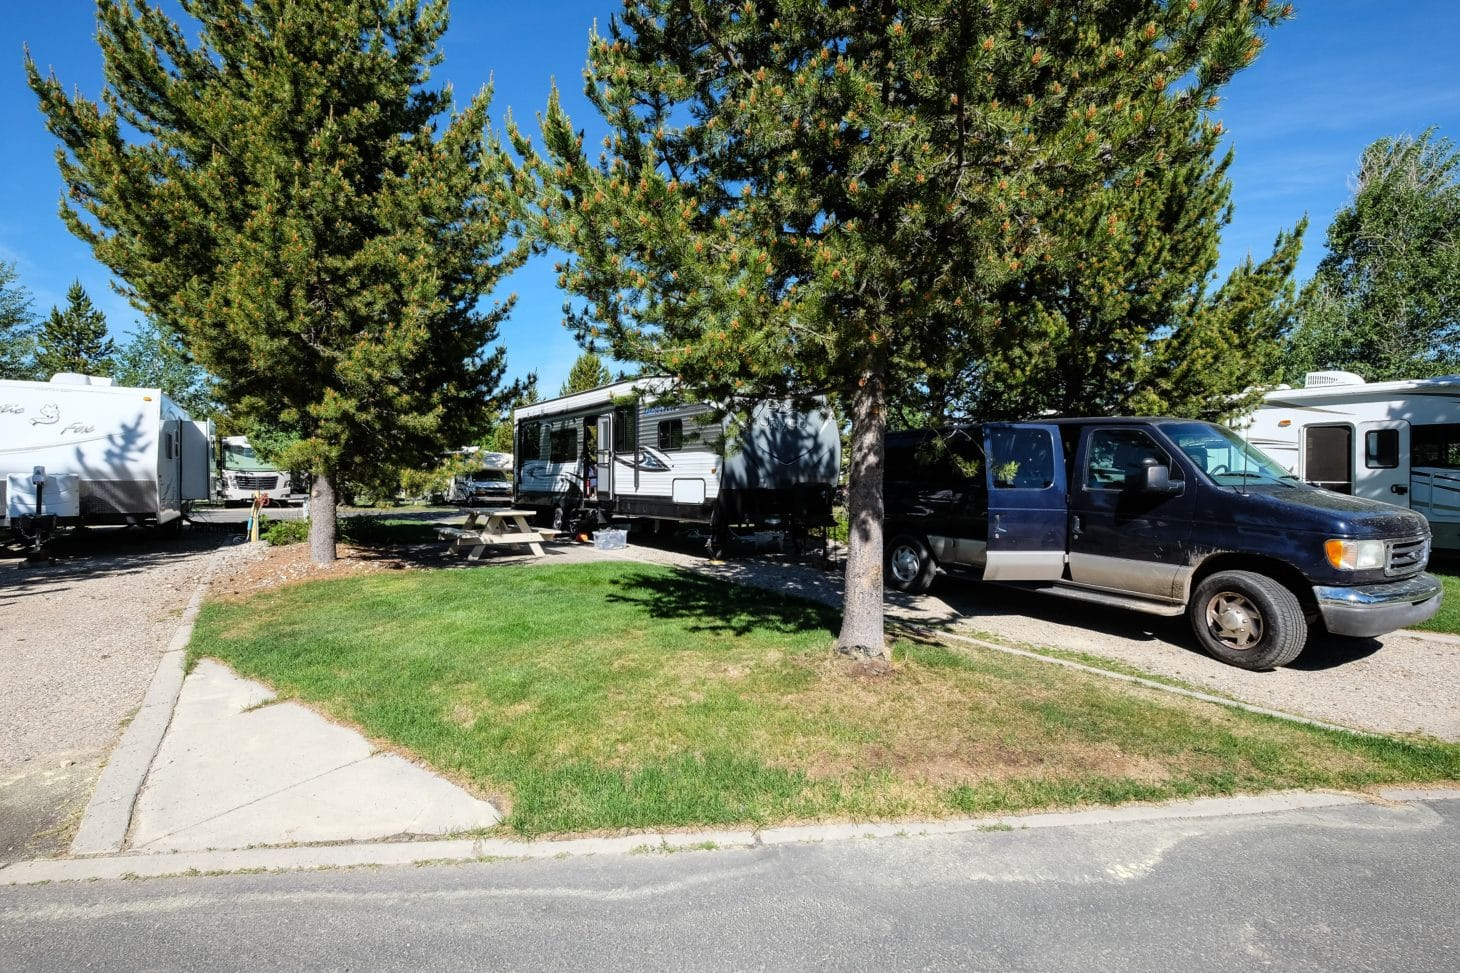 rv parked at a yellowstone national park campground